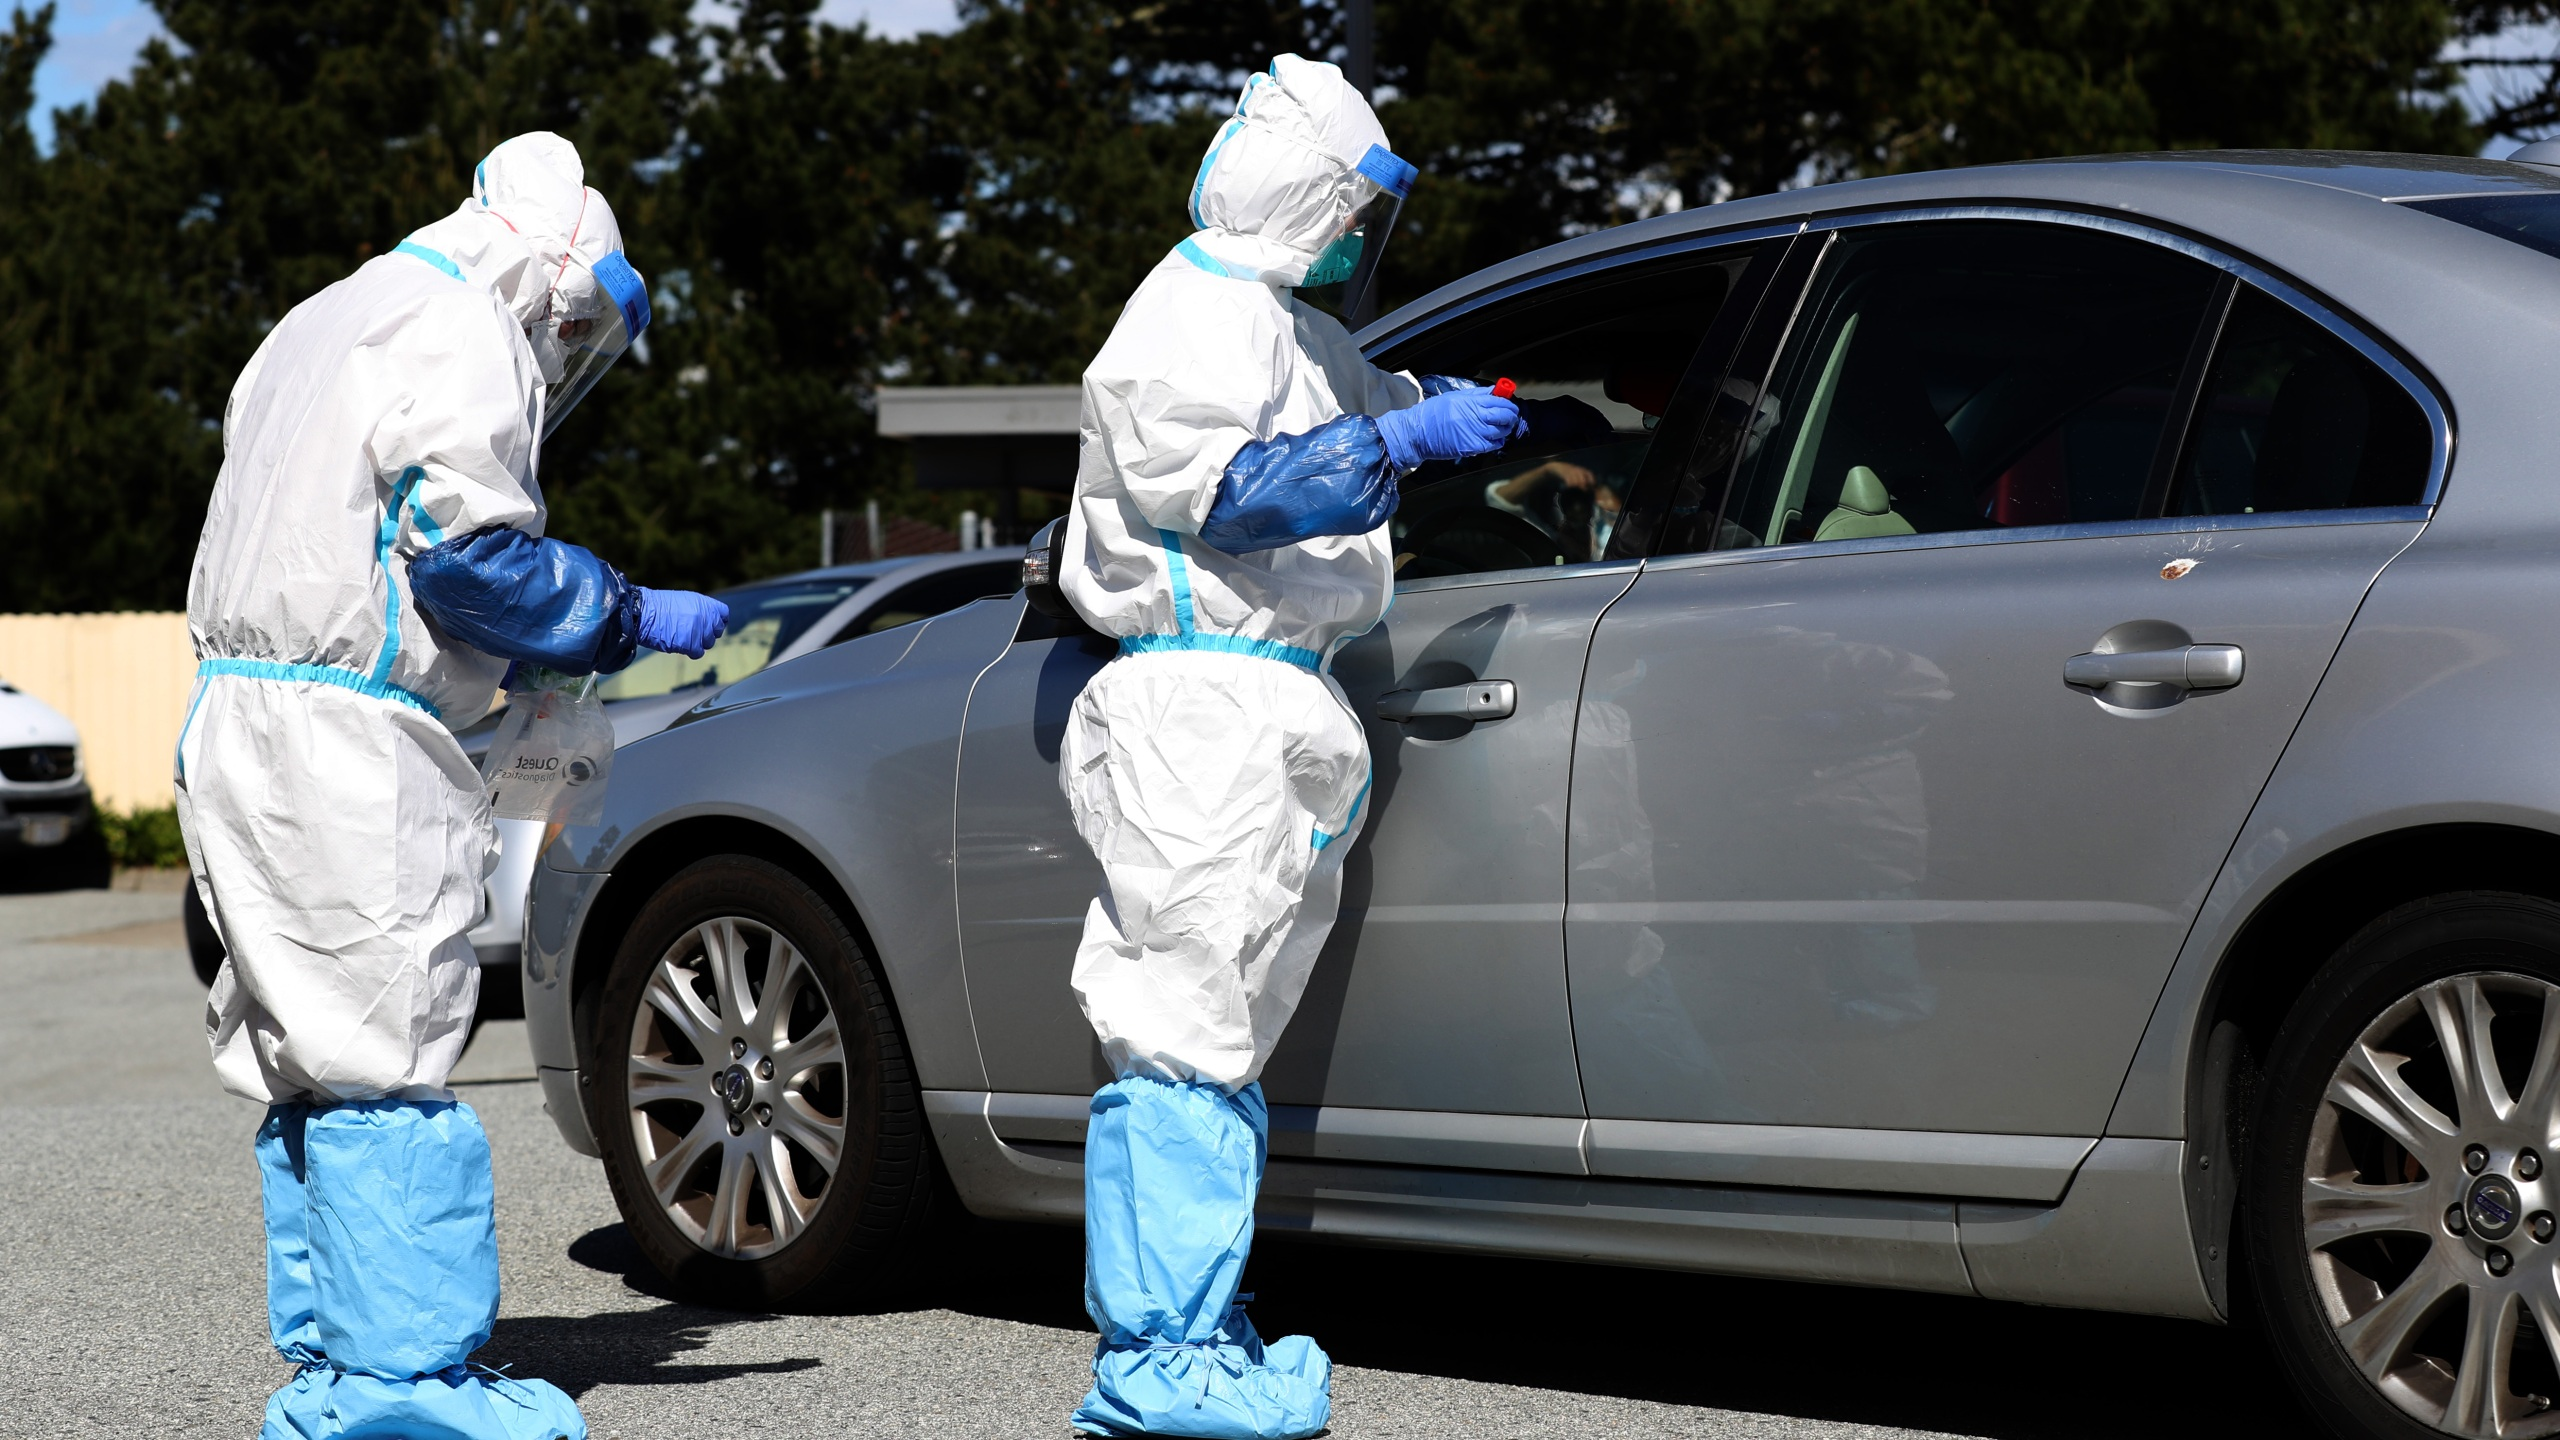 Medical professionals administer a coronavirus test during a drive-thru testing station on March 26, 2020 in Daly City. (Justin Sullivan/Getty Images)